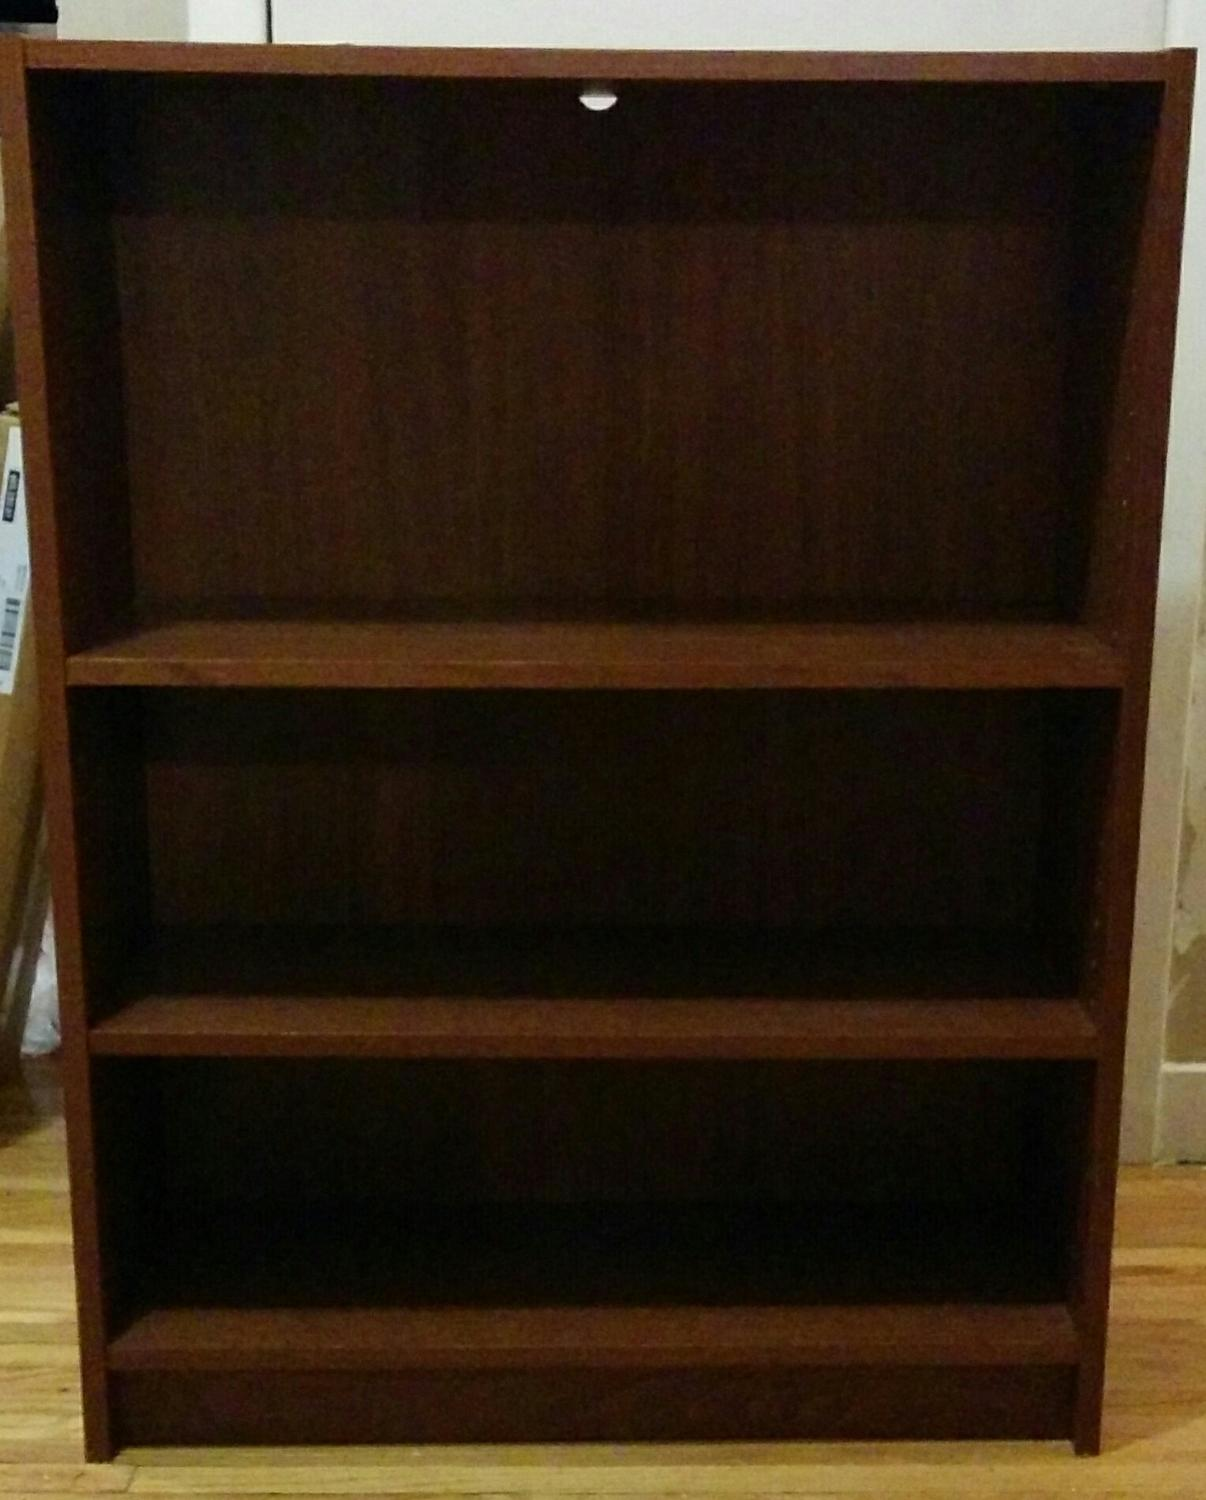 Find More Price Drop! Ikea Billy Bookcase Medium Brown